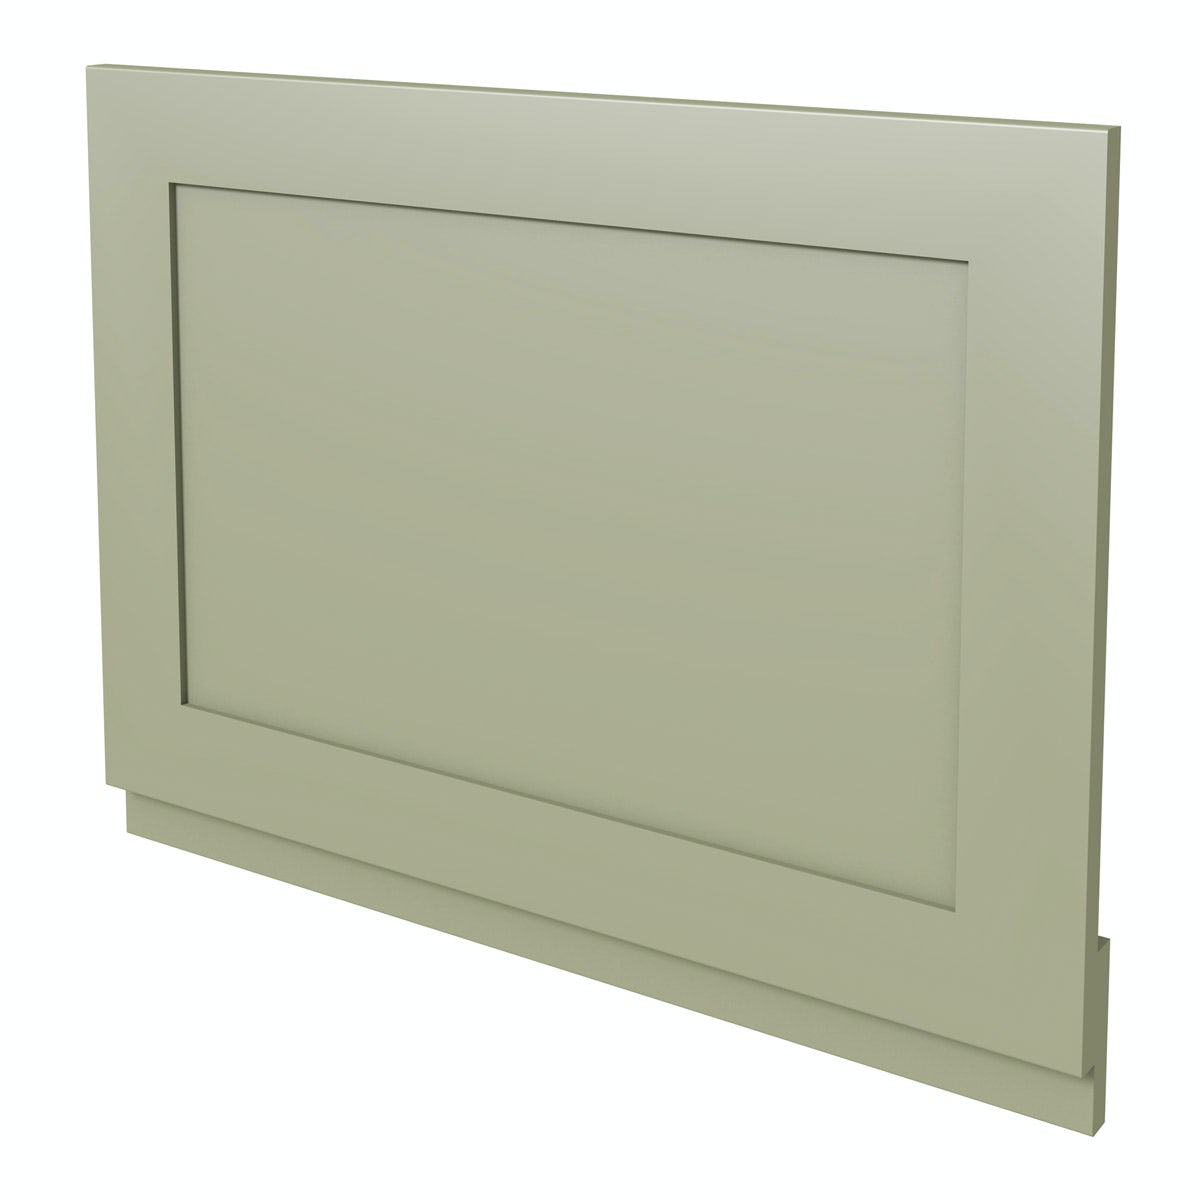 Camberley Sage wooden straight bath end panel 700